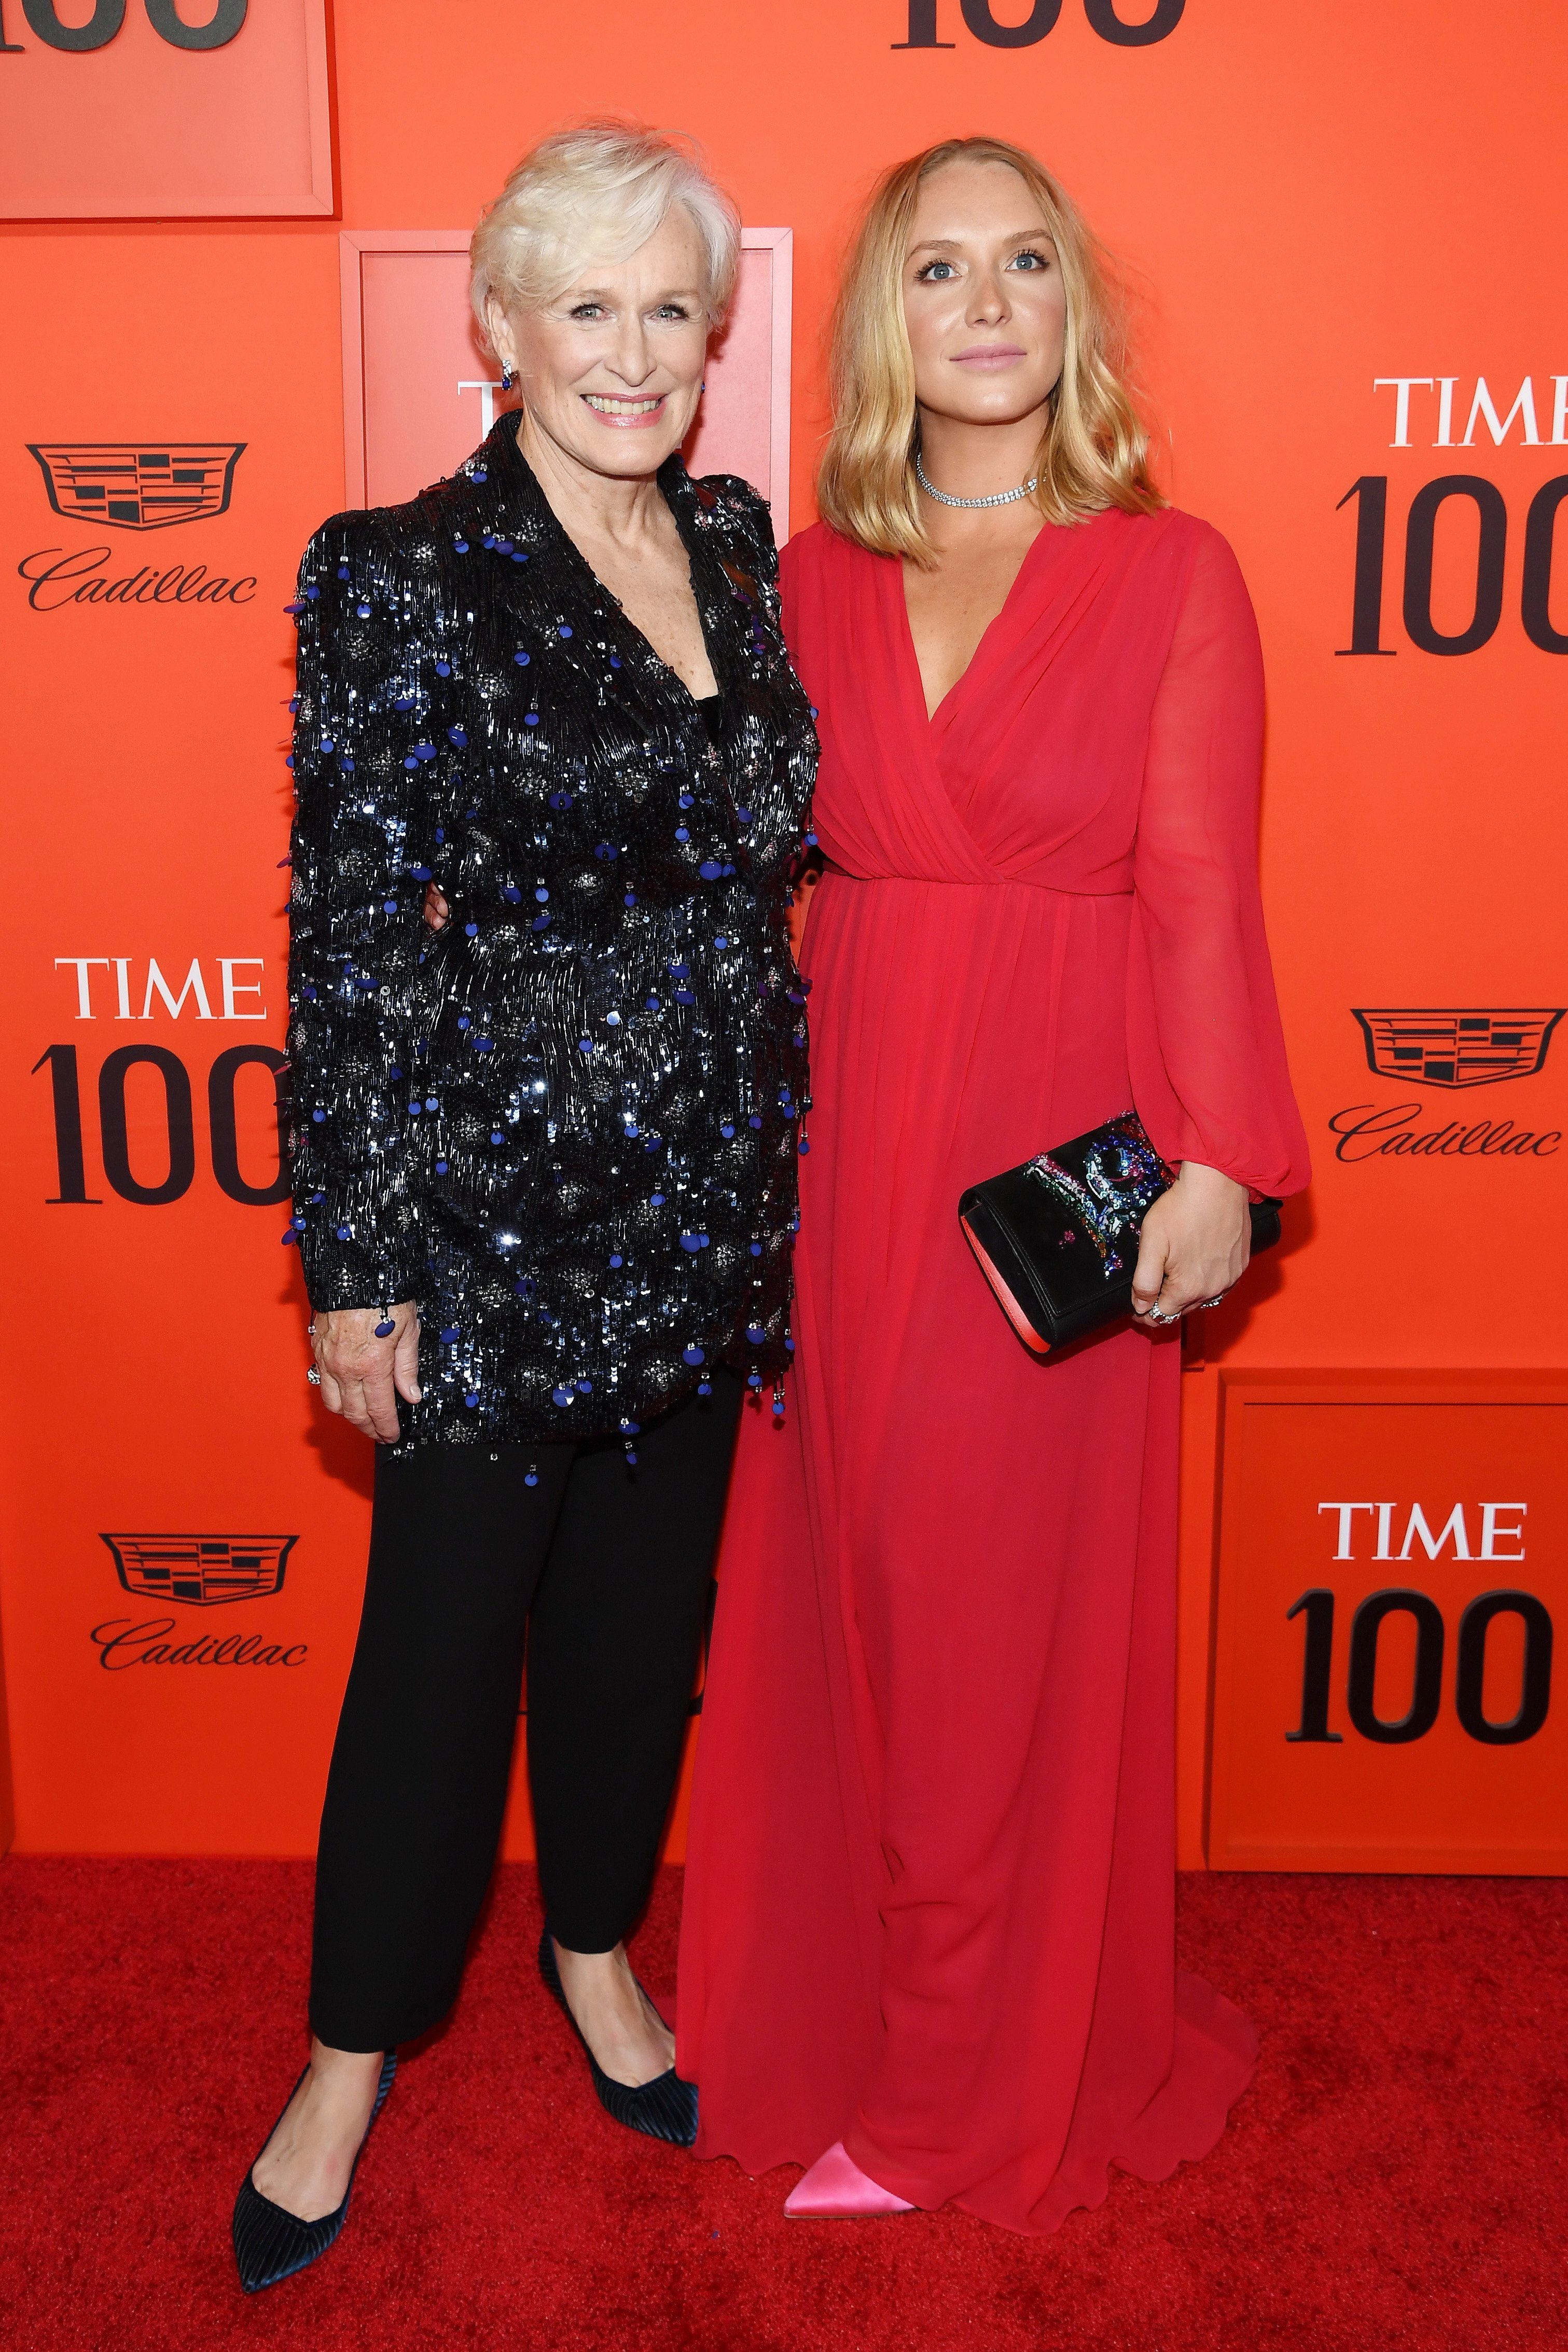 Glenn Close and Annie Starke attend the TIME 100 Gala Red Carpet at Jazz at Lincoln Center   Source: Getty Images